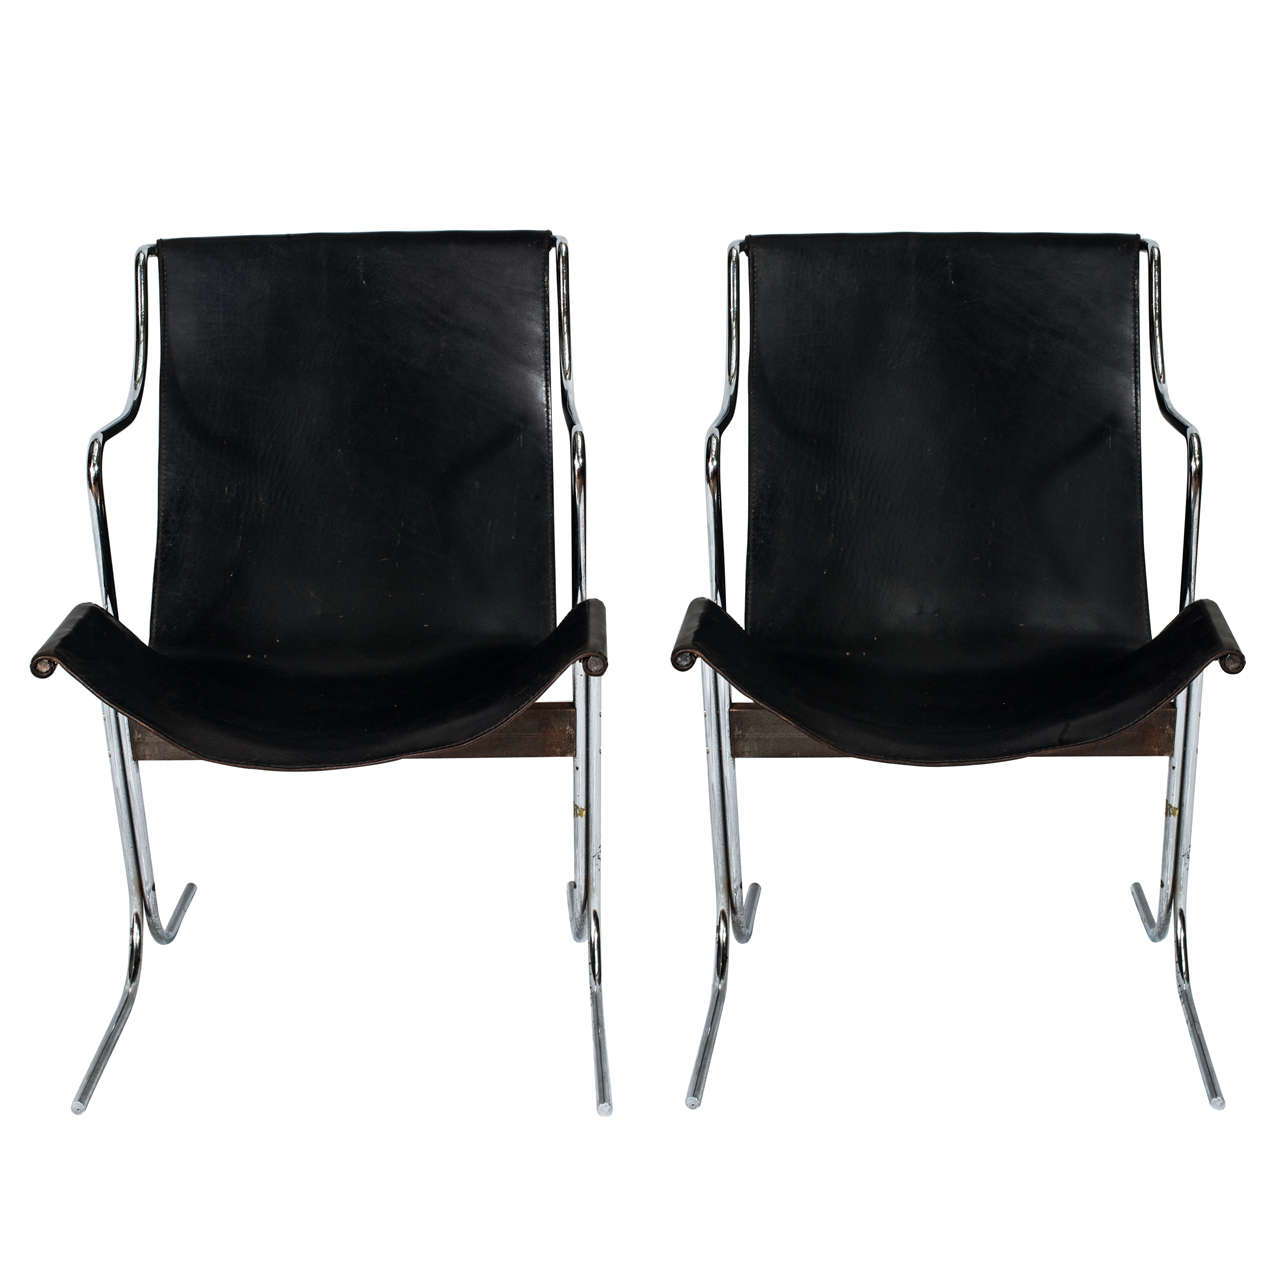 Pair of 1970s Steel and Black Leather Italian Chairs